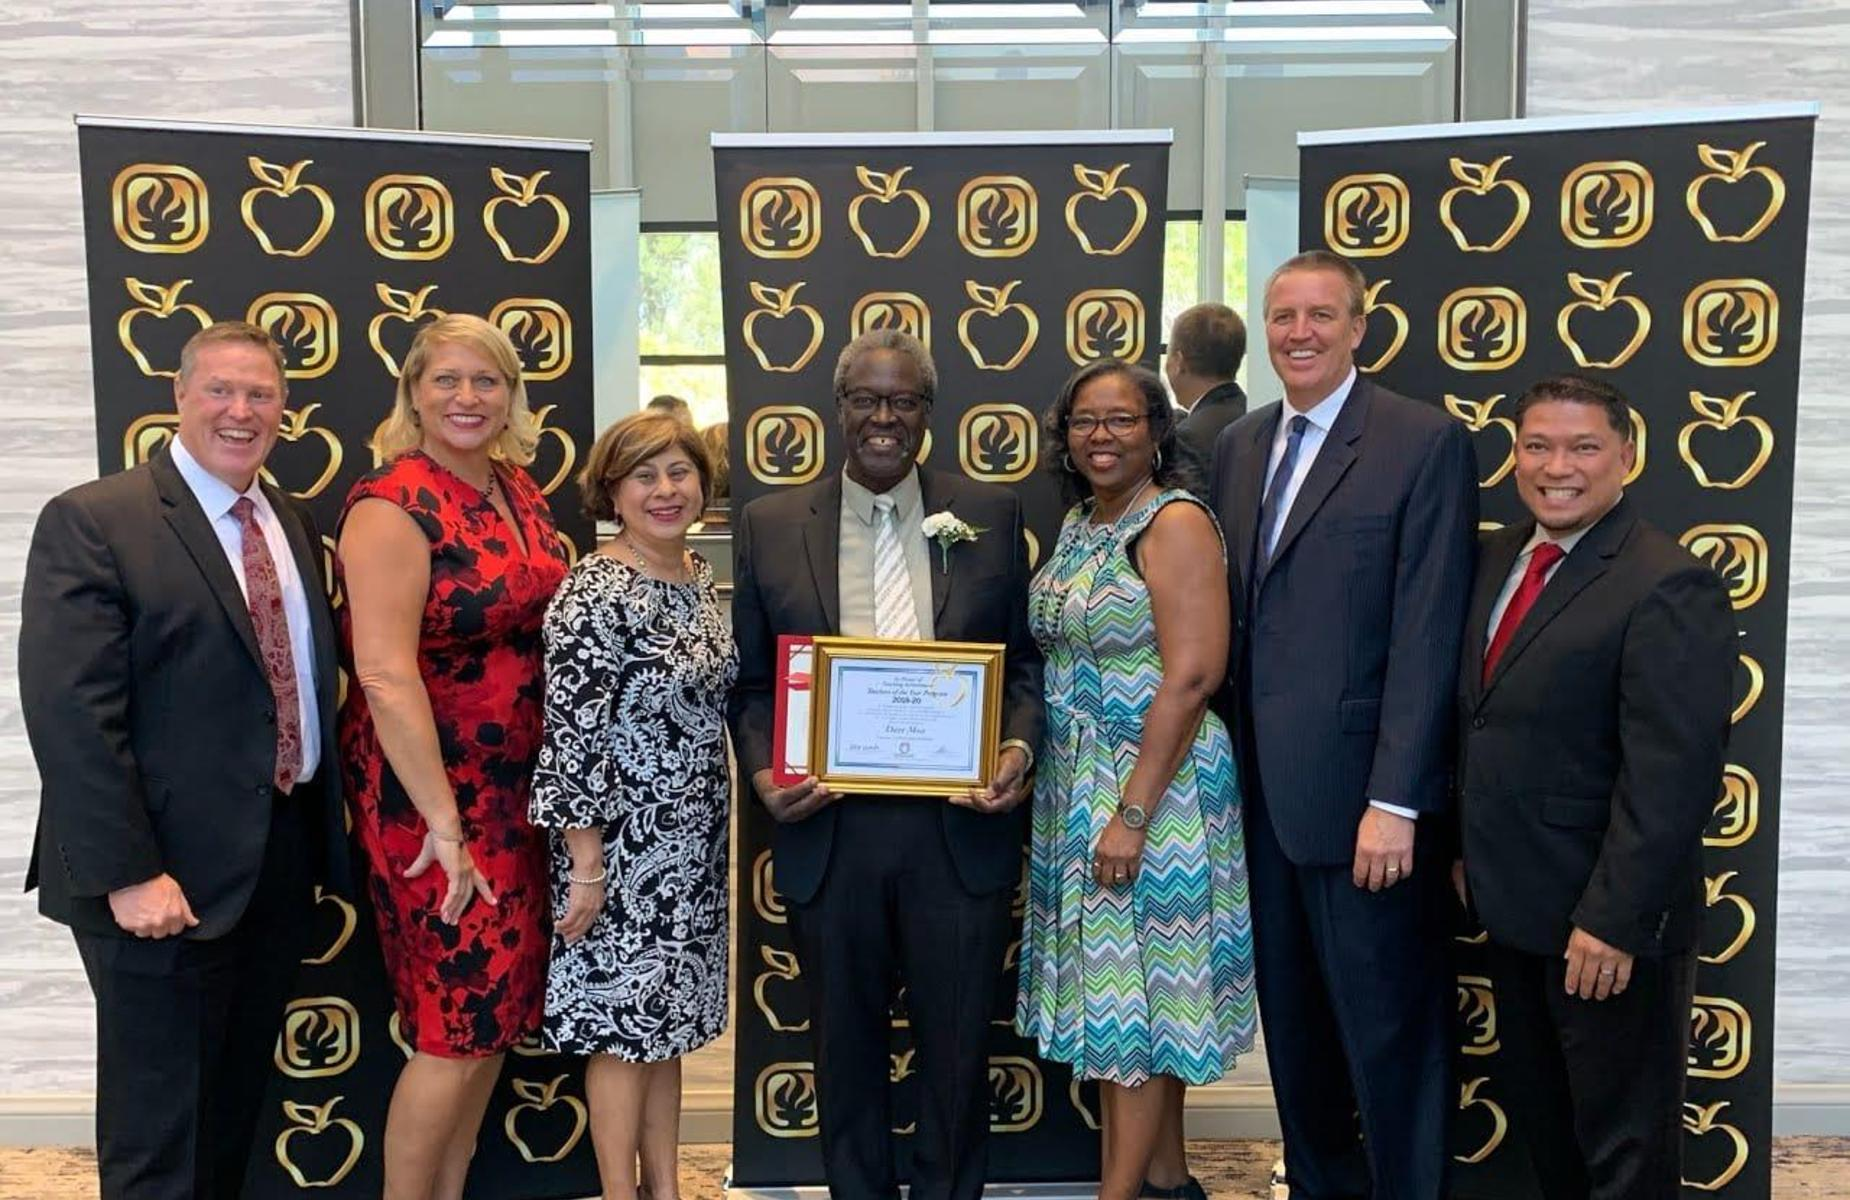 Congratulations Mr. David Moss, APT/PUSD Teacher of the Year. Celebrating 39 years of exceptional service to PUSD, the community, and students!